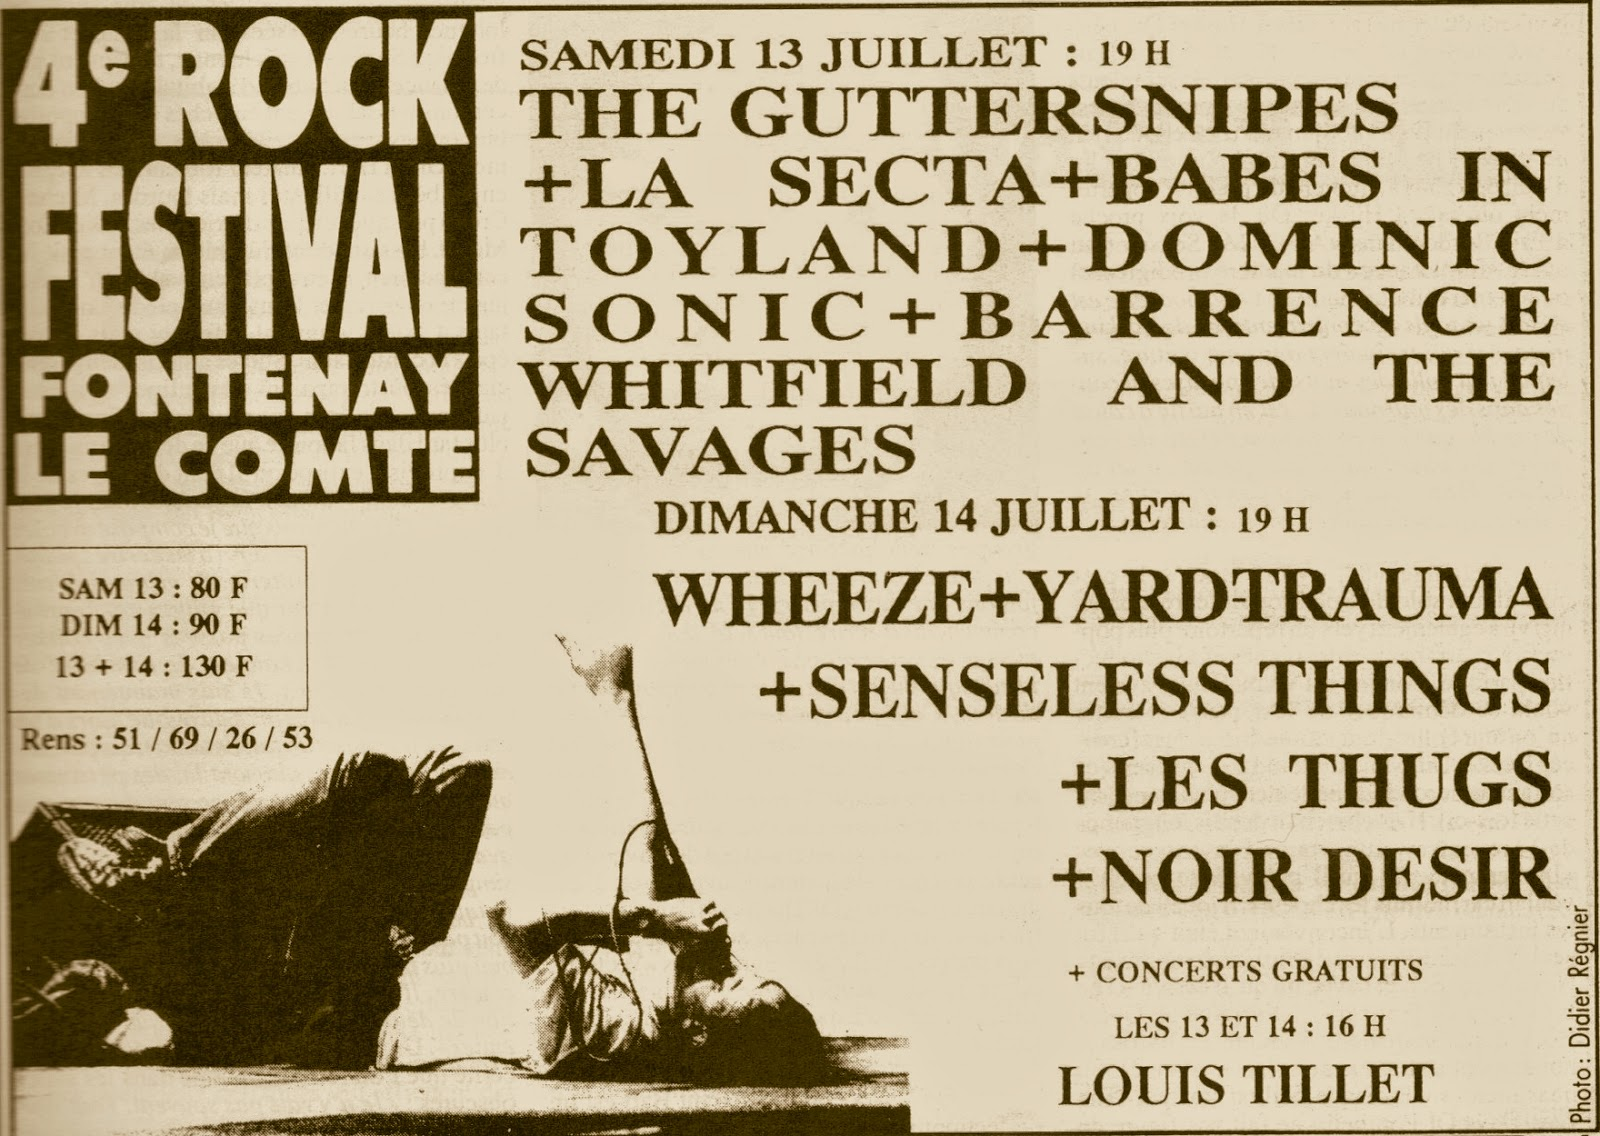 13 juillet 1991 The Guttersnipes, La Secta, Babes In Toyland, Dominic Sonic, Barrence Whitfield and the Savages à Fontenay le Comte